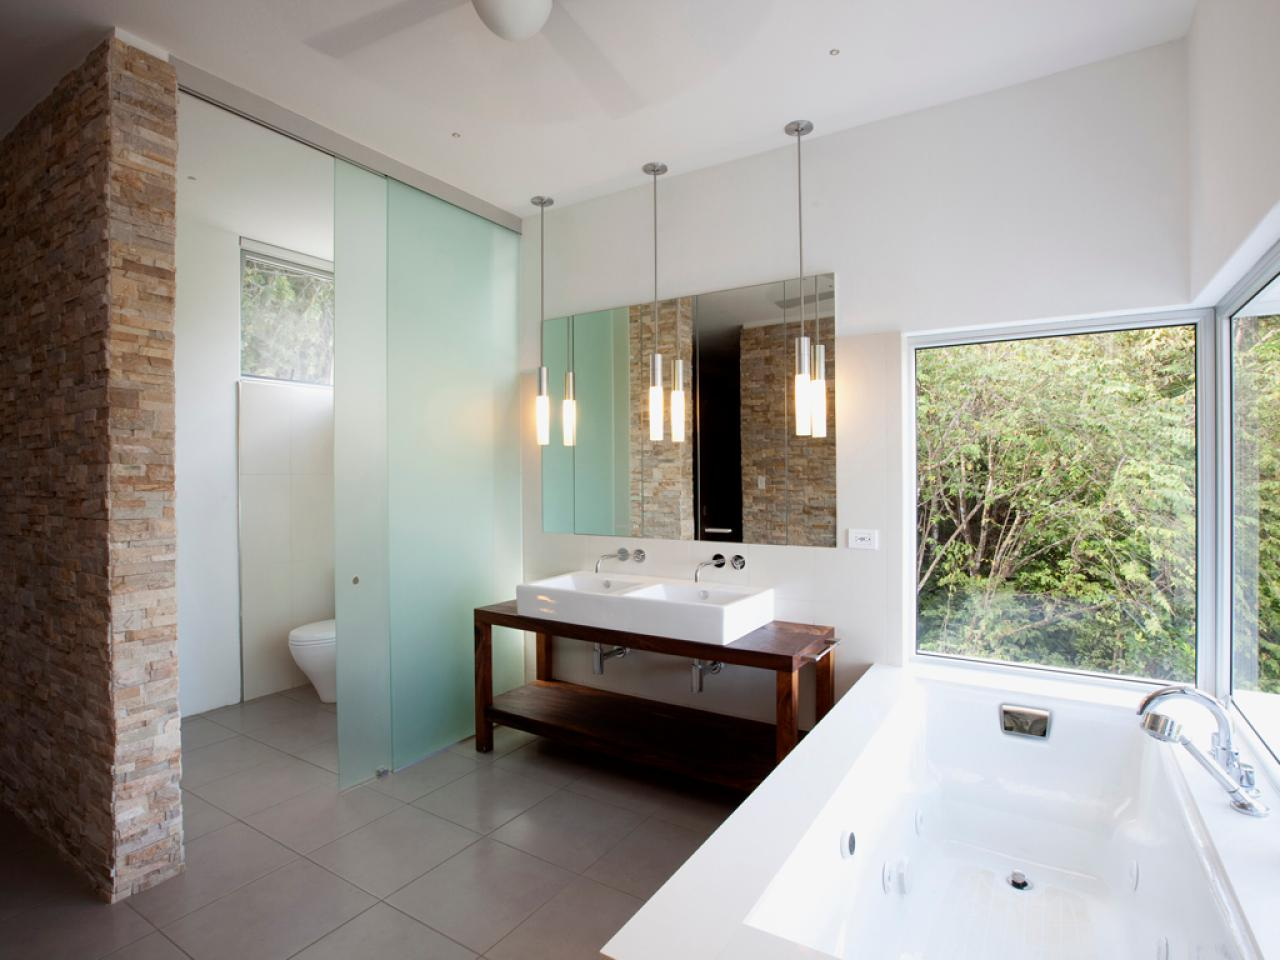 Frosted Glass Divider Provides Privacy In Open Bathroom Hgtv